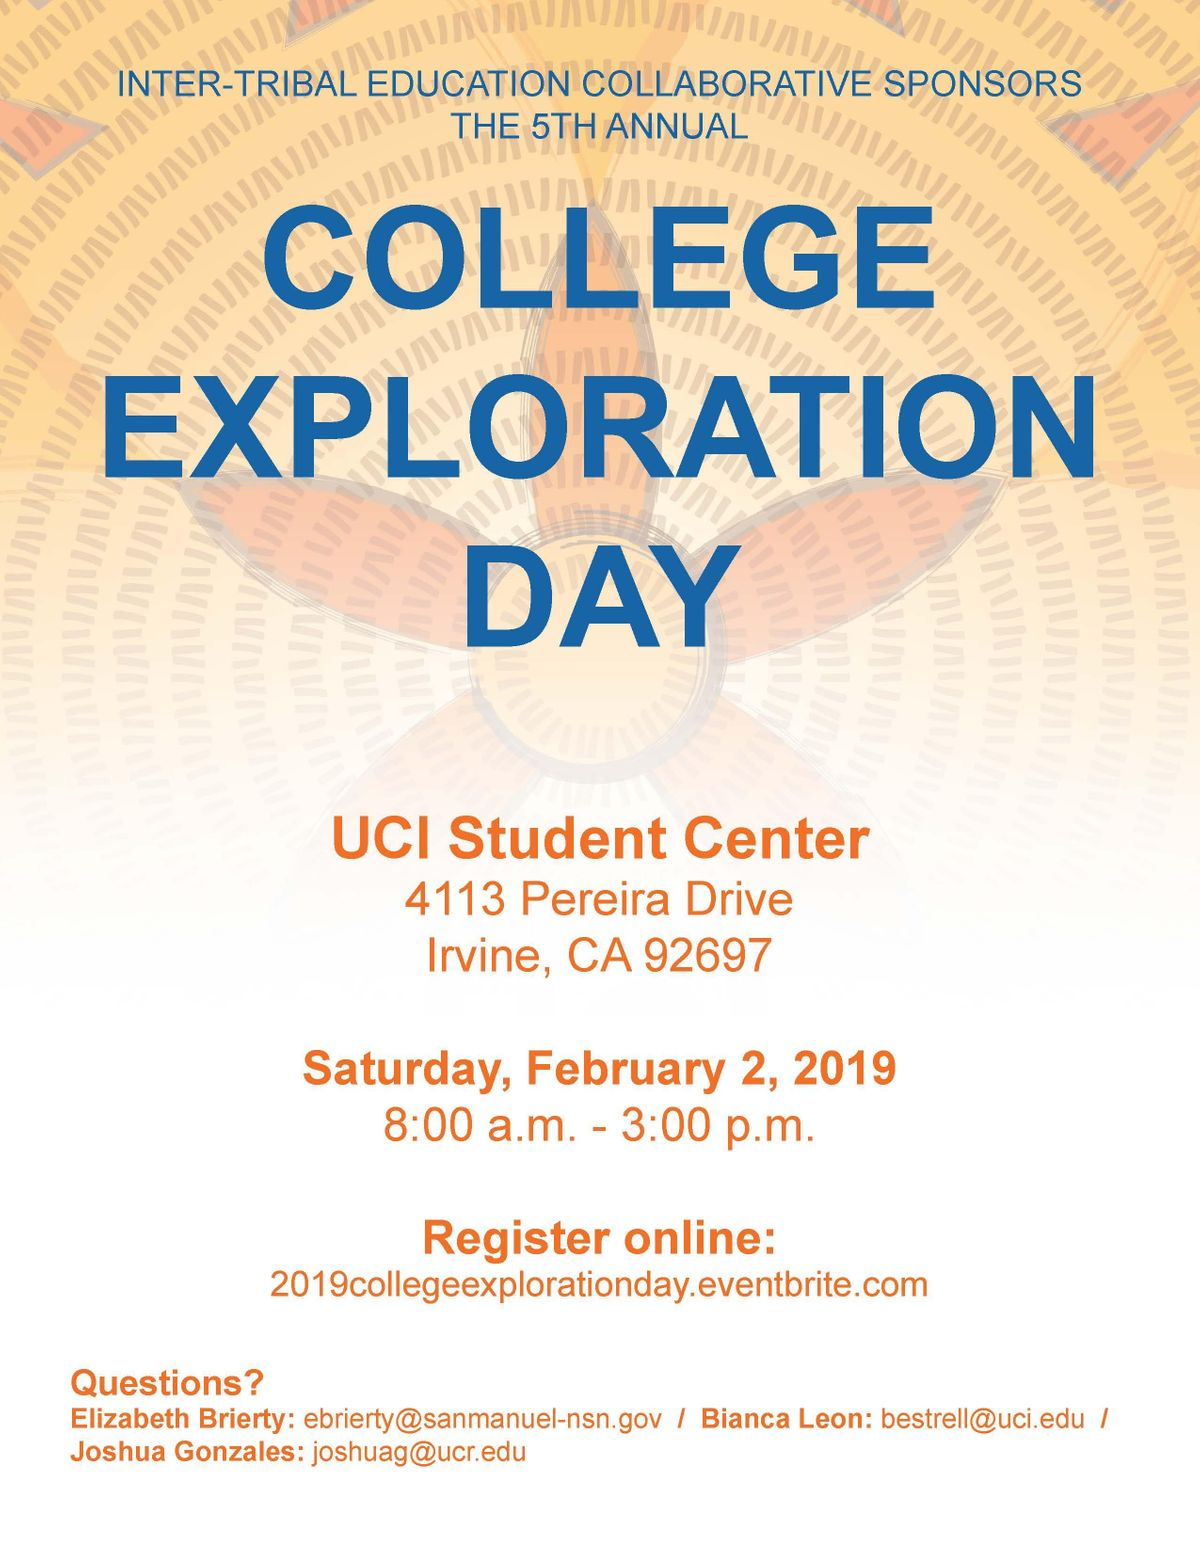 College Exploration Day